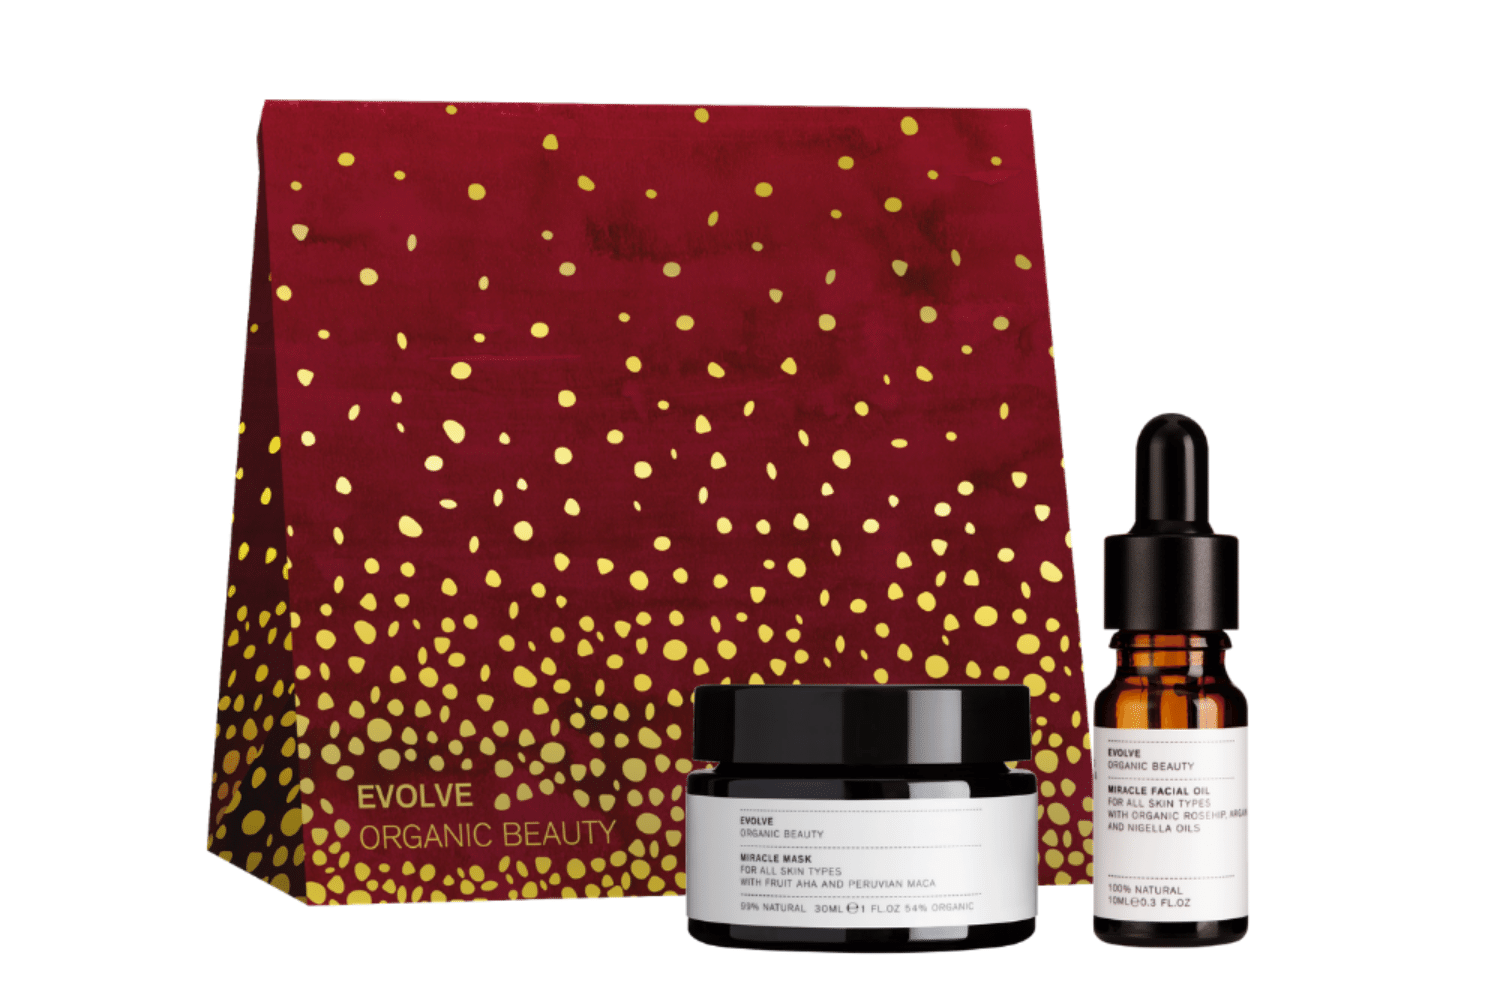 Evolve Organic Beauty Miracle Collection